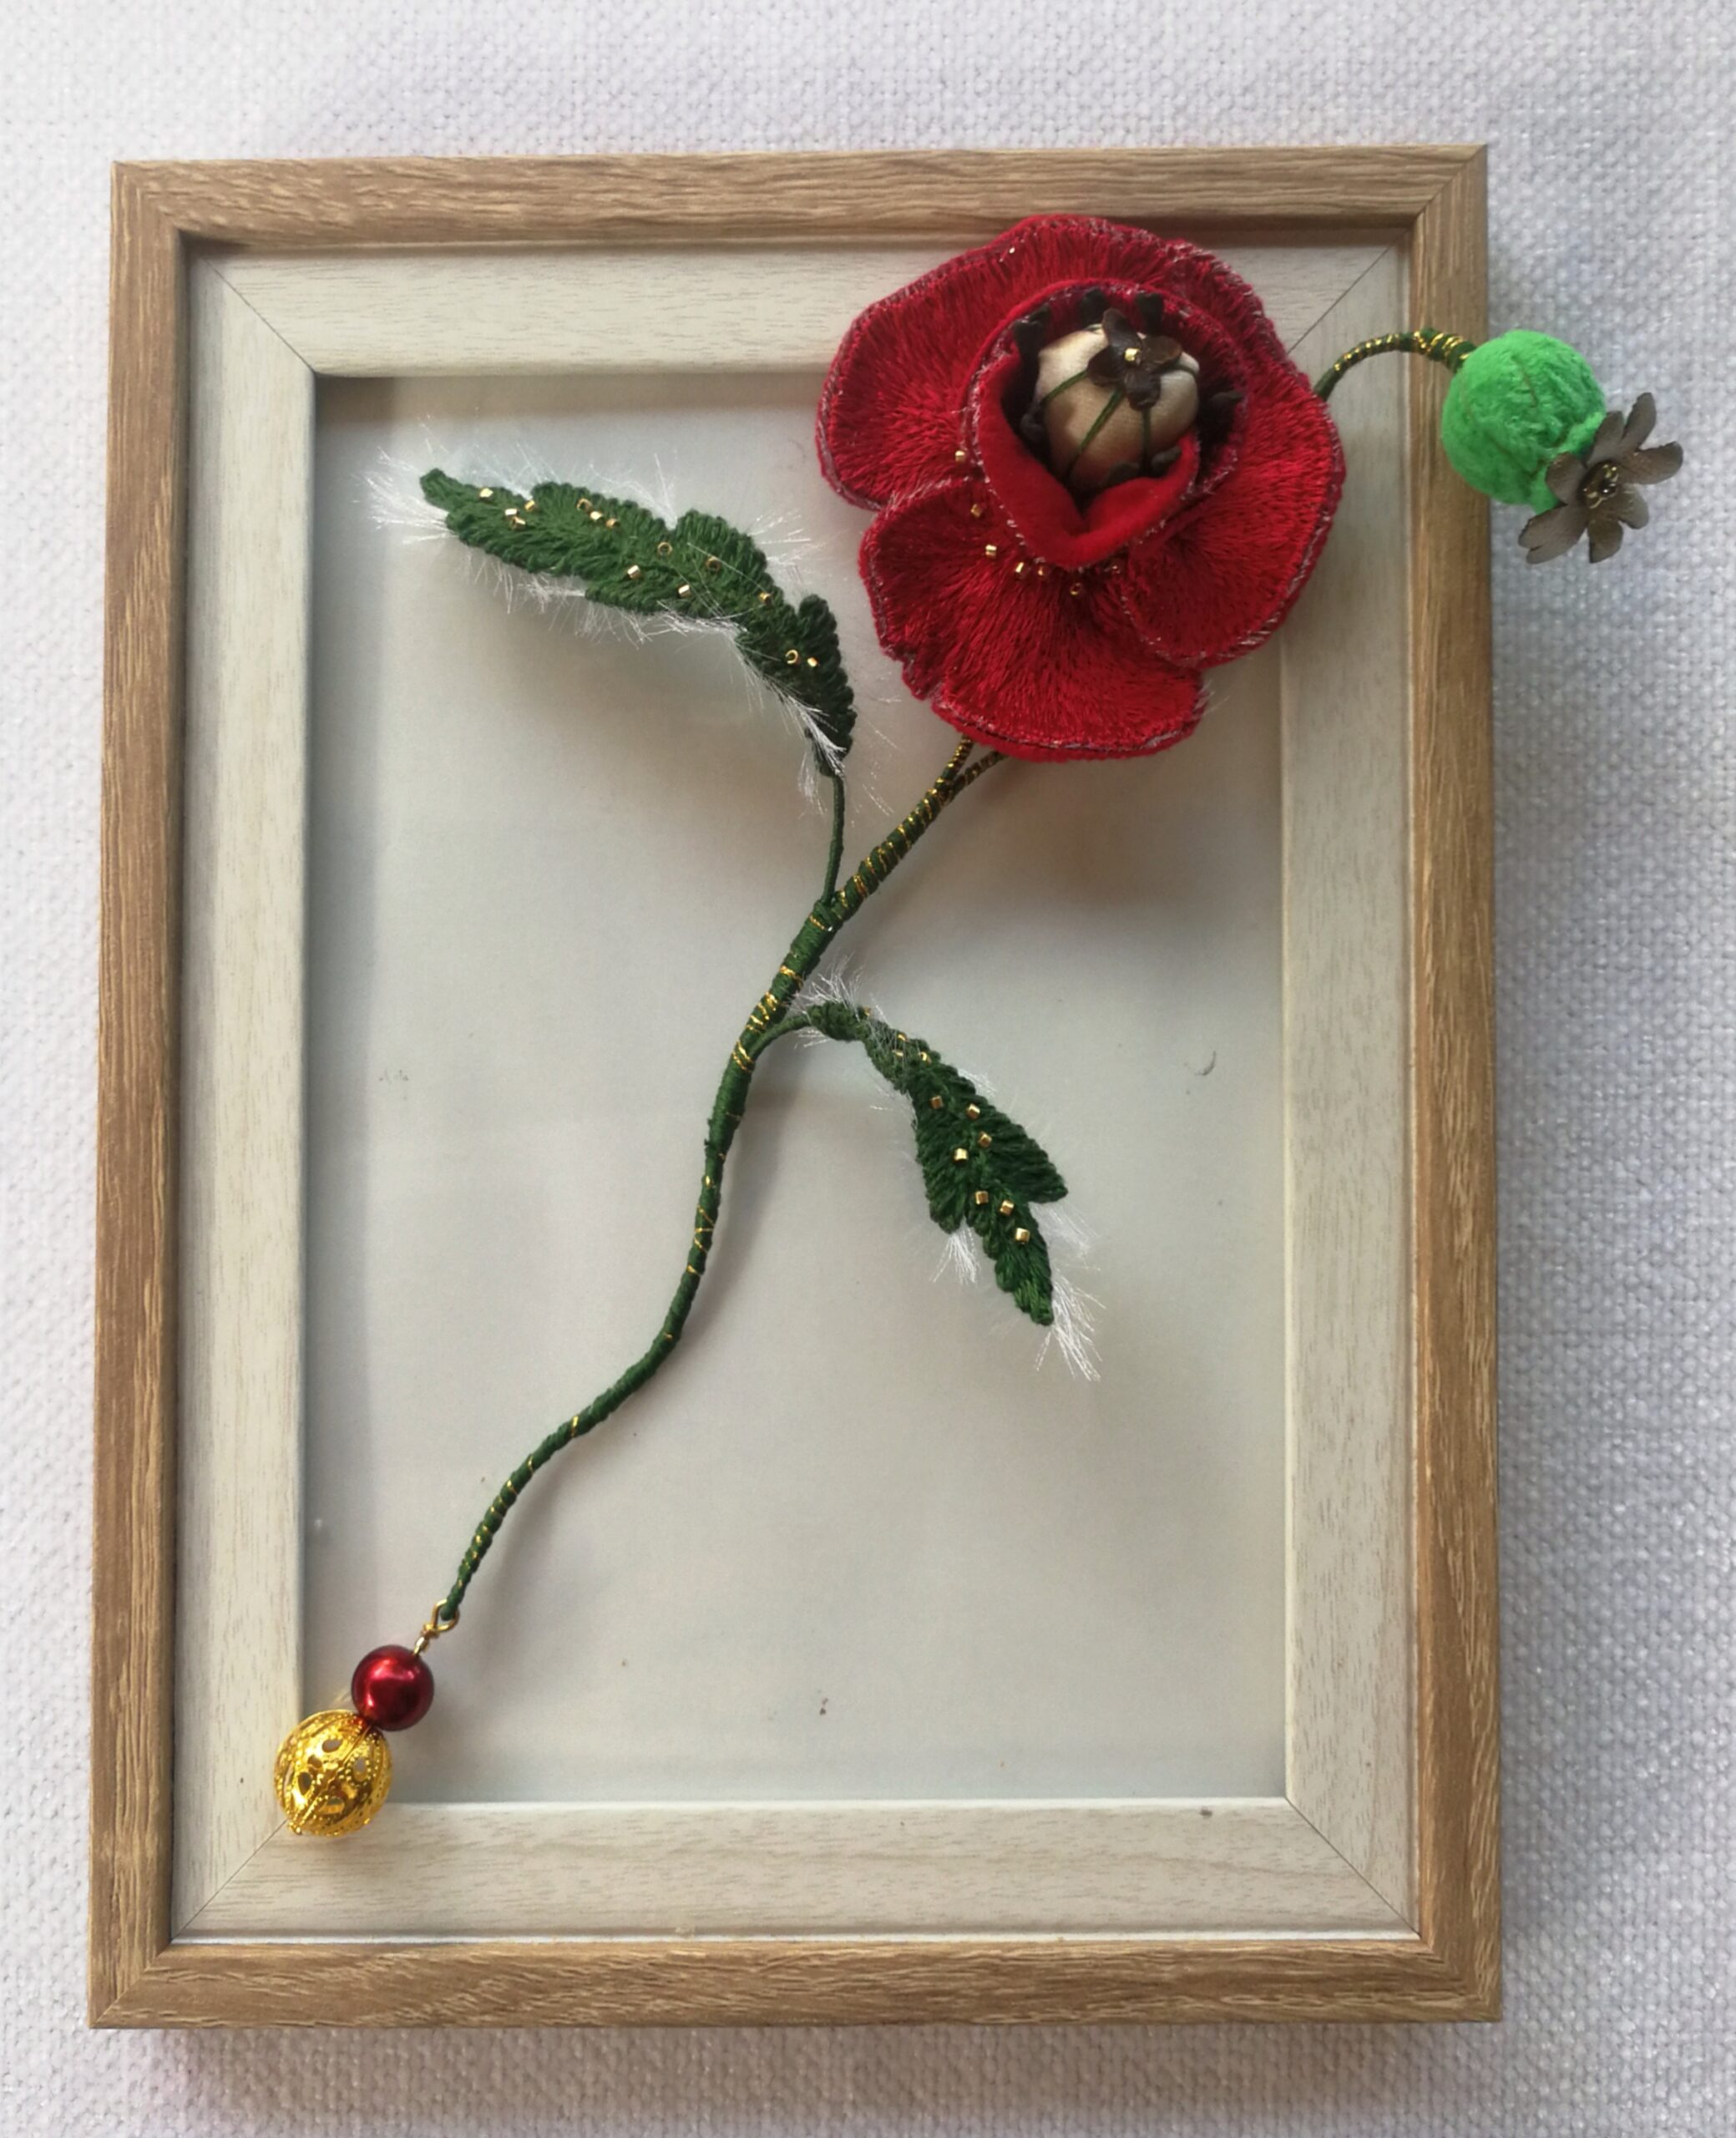 myembroiderypassions review Poppy Flower Online Hand Embroidery Class